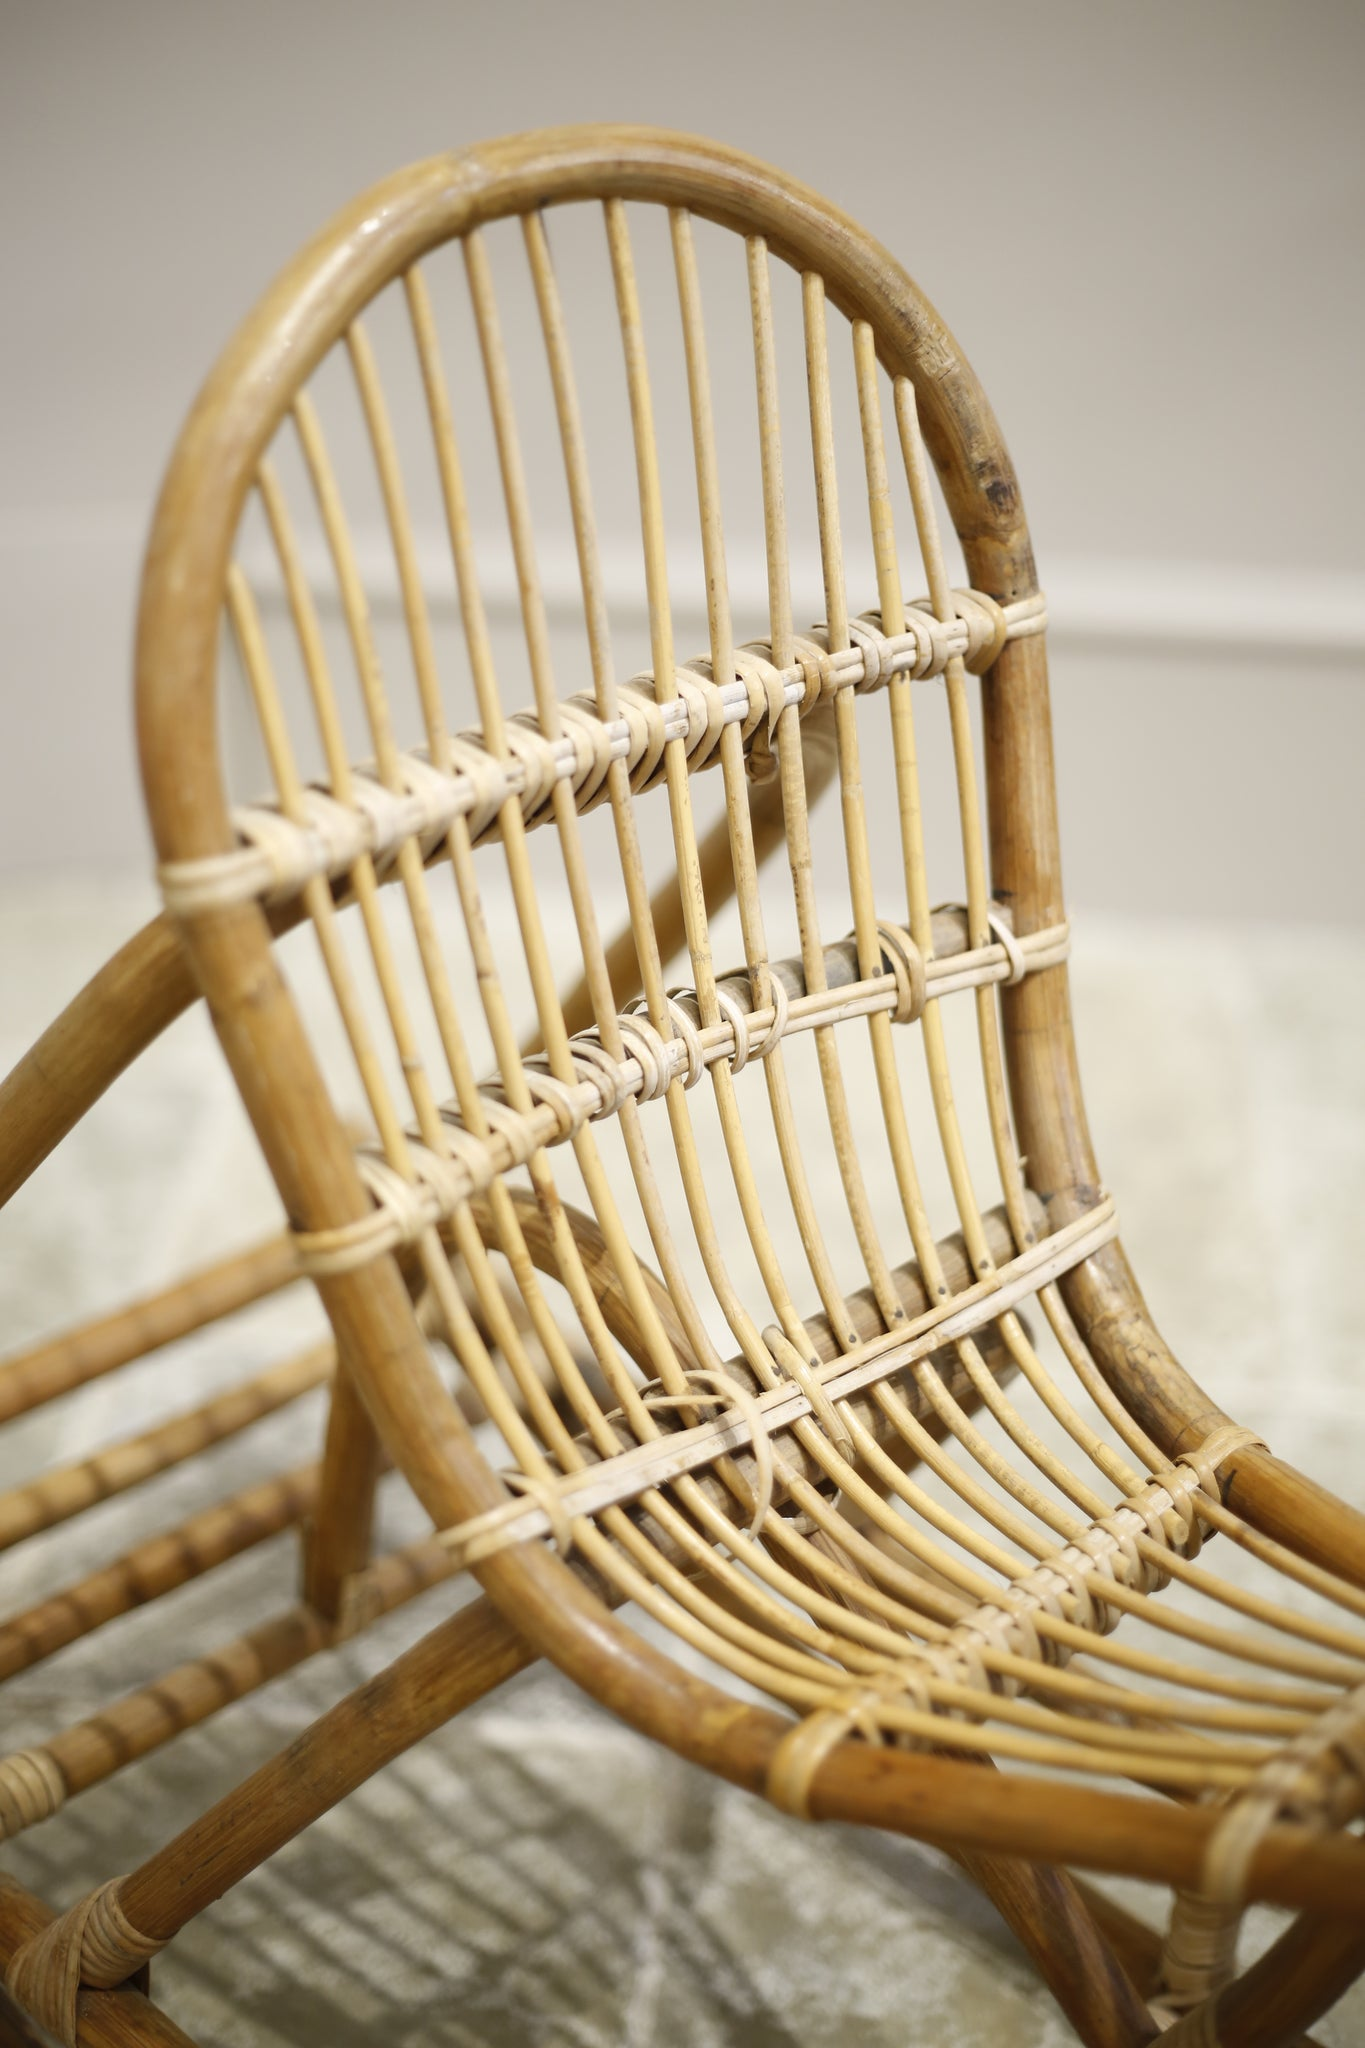 20th century wicker and rattan children's rocking horse - TallBoy Interiors